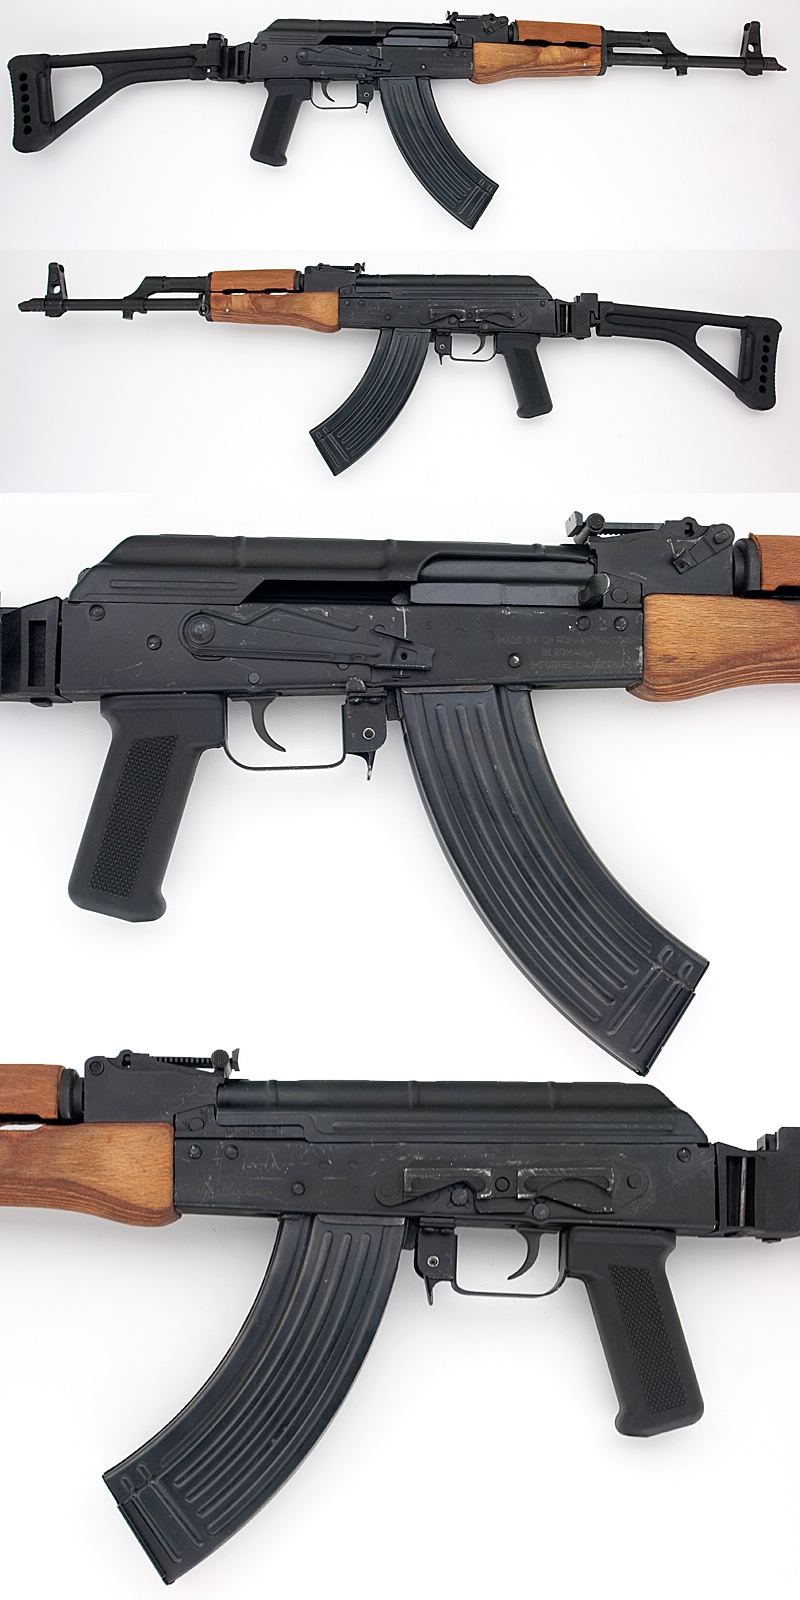 russian romanian ak 47 wasr 10 semi automatic rifle folding stock for sale at gunauction. Black Bedroom Furniture Sets. Home Design Ideas